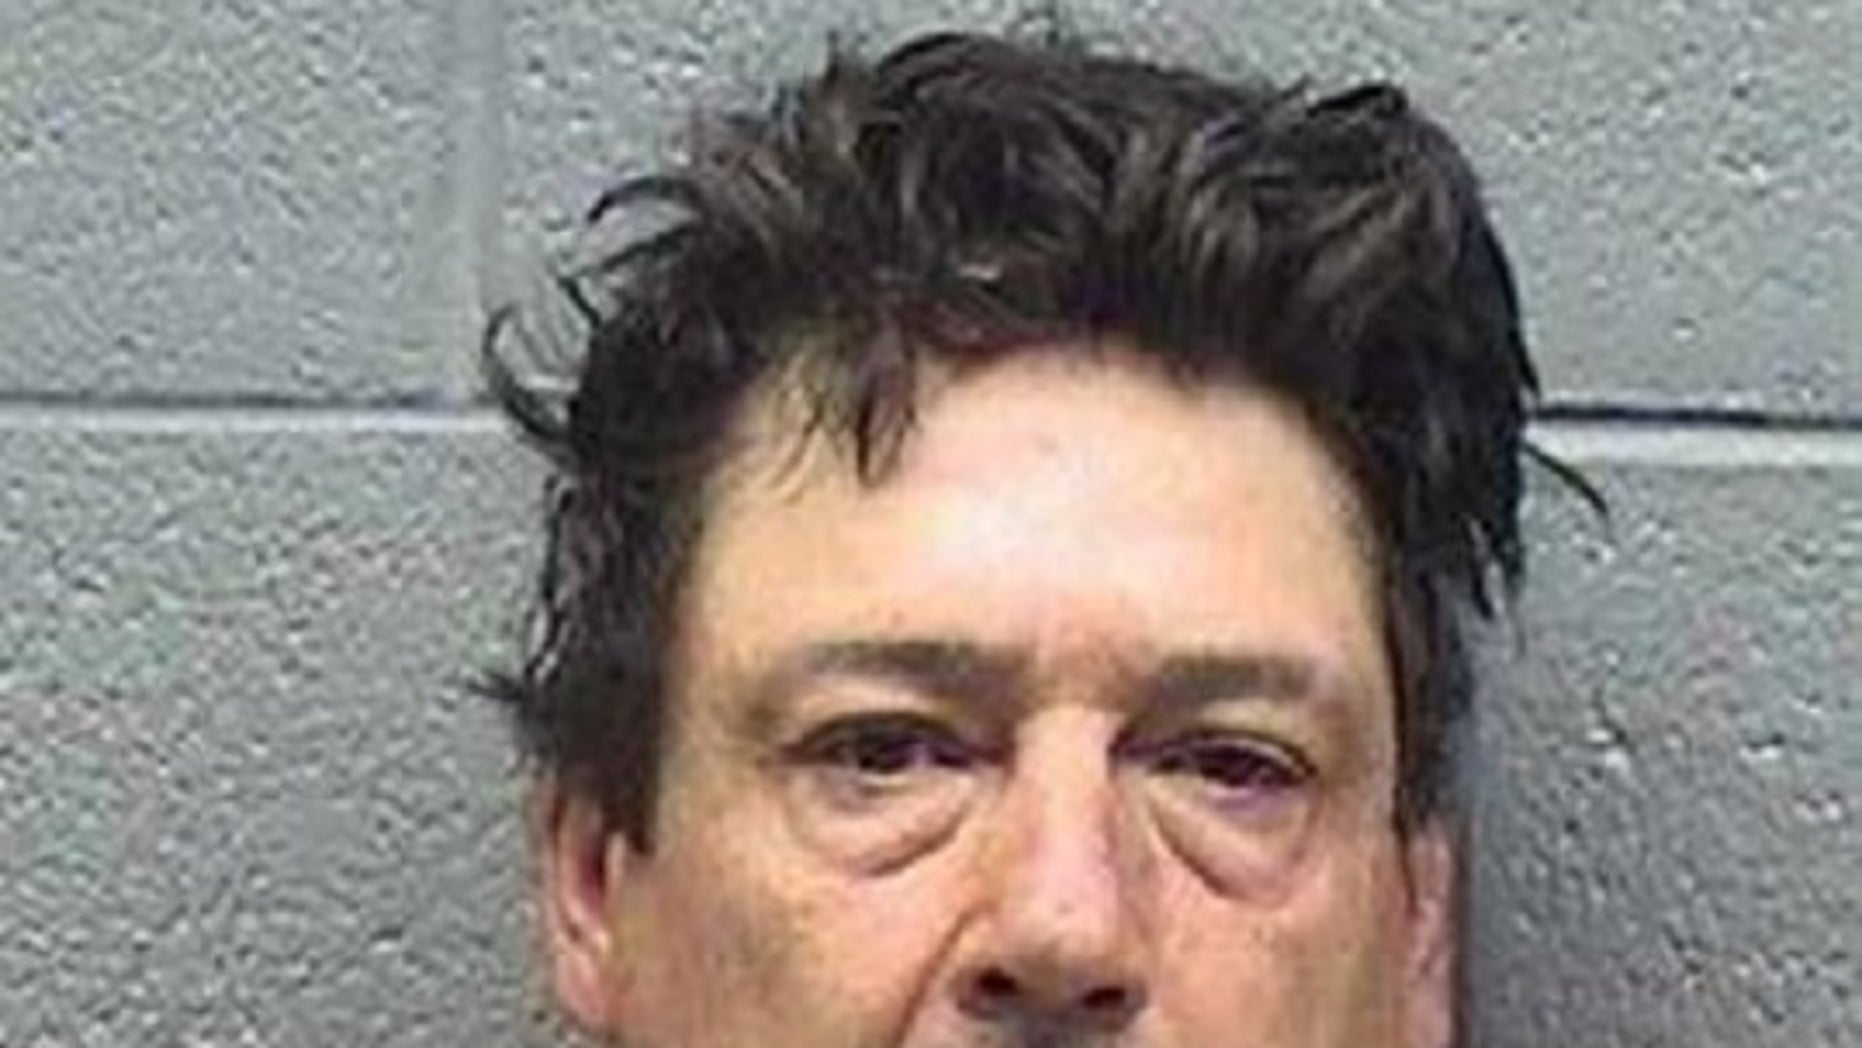 Anthony Joseph Palma, 59, sexually assaulted and killed an 8-year-old girl, authorities say.